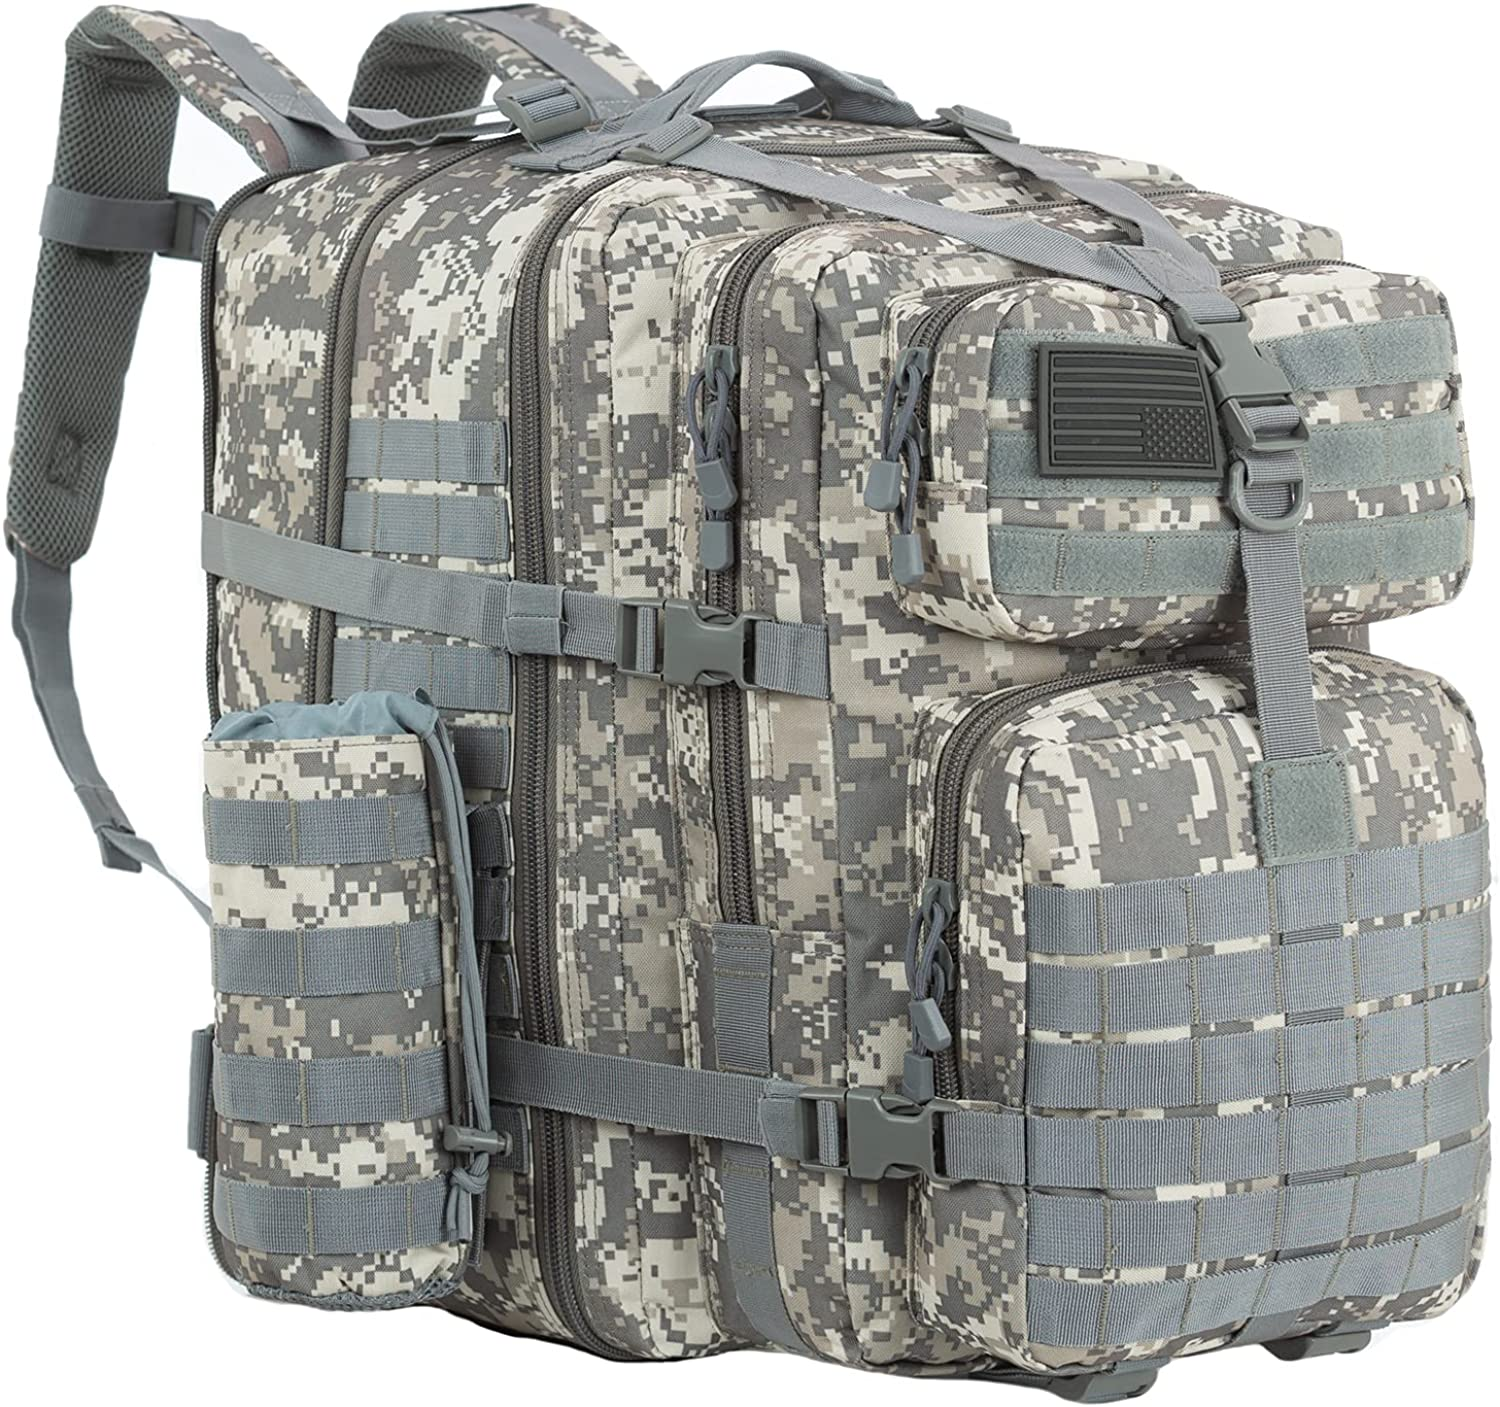 GZ XINXING 64L Large 3 day Molle Assault Pack Military Tactical Army Backpack Bug Out Bag Rucksack Daypack